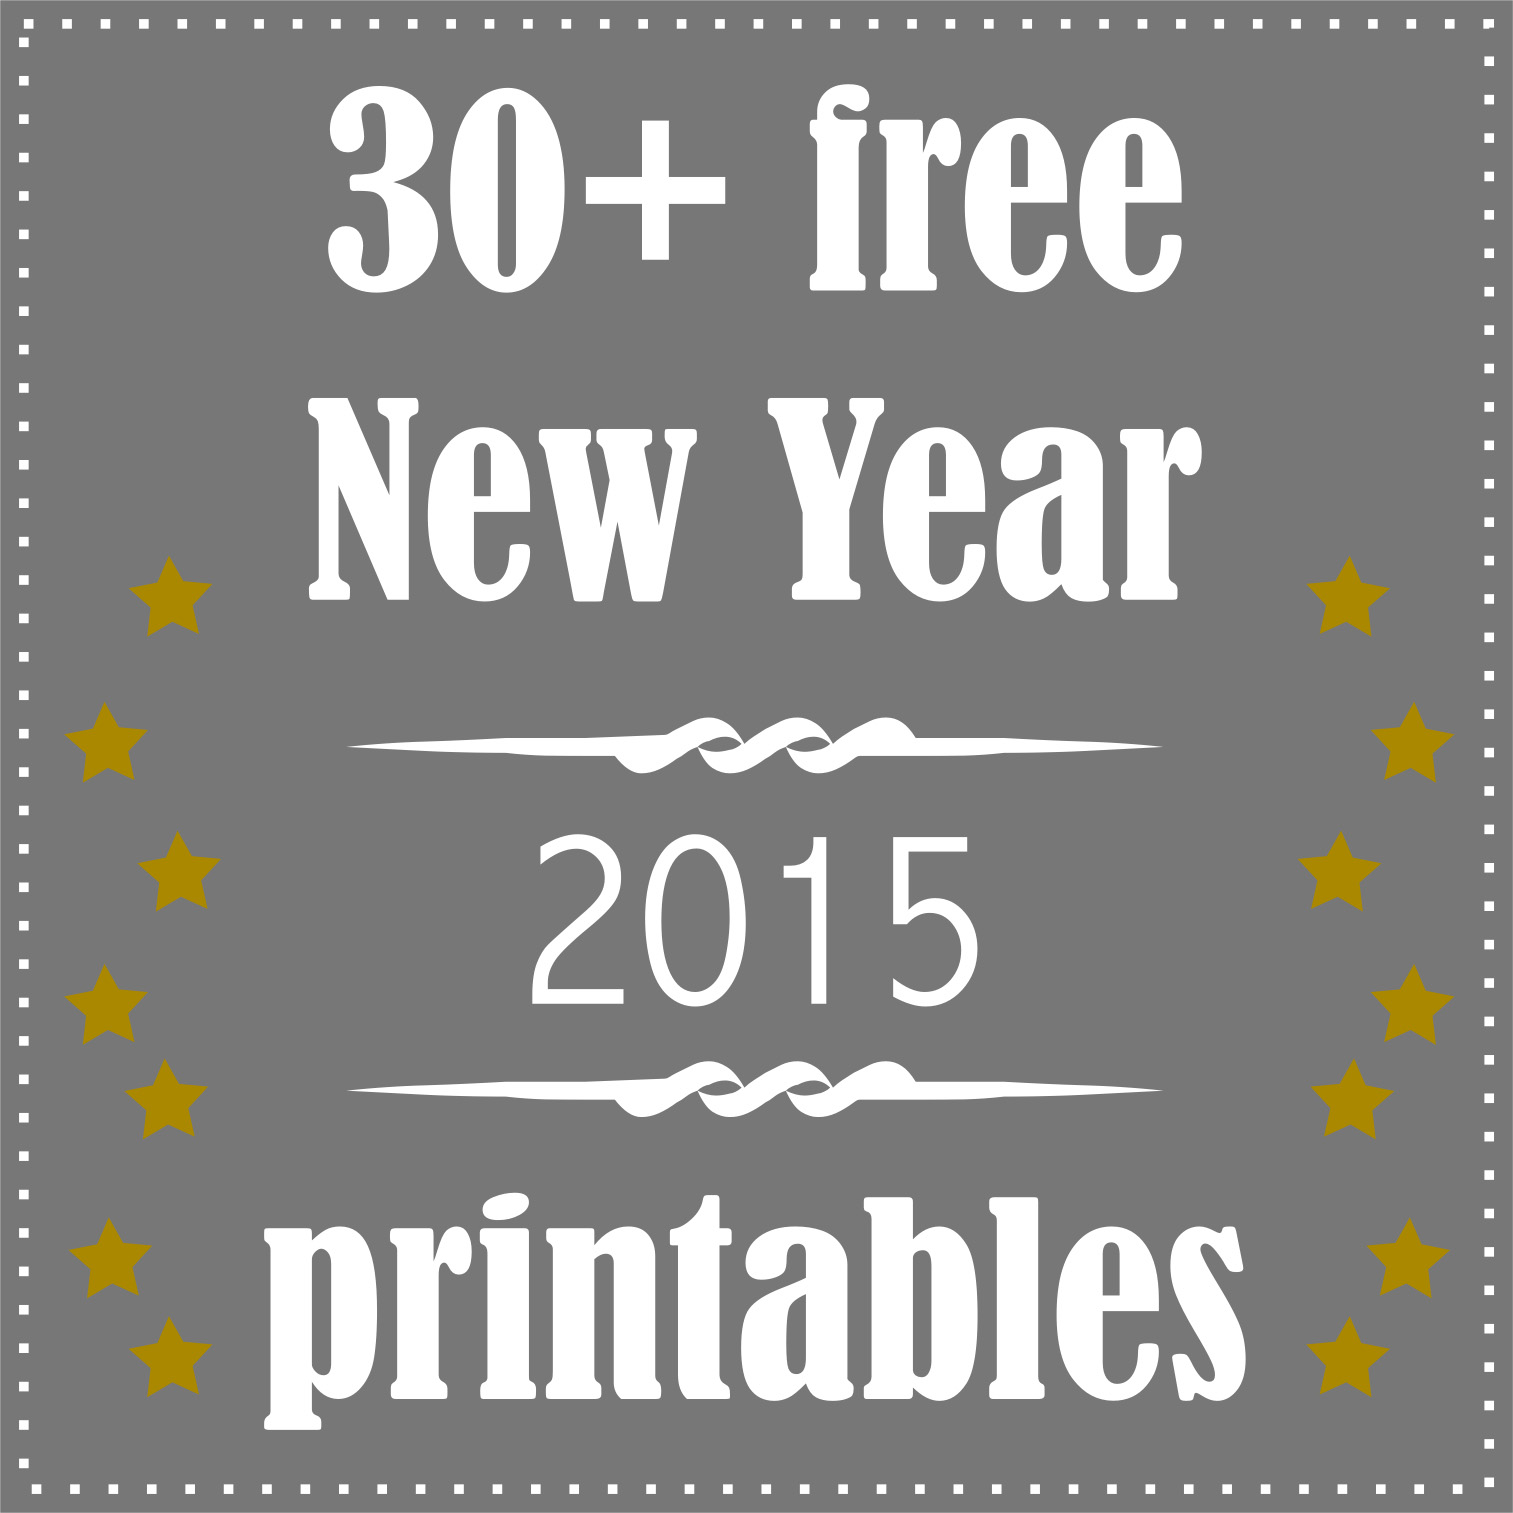 5 Images of Free New Year's Eve Printables